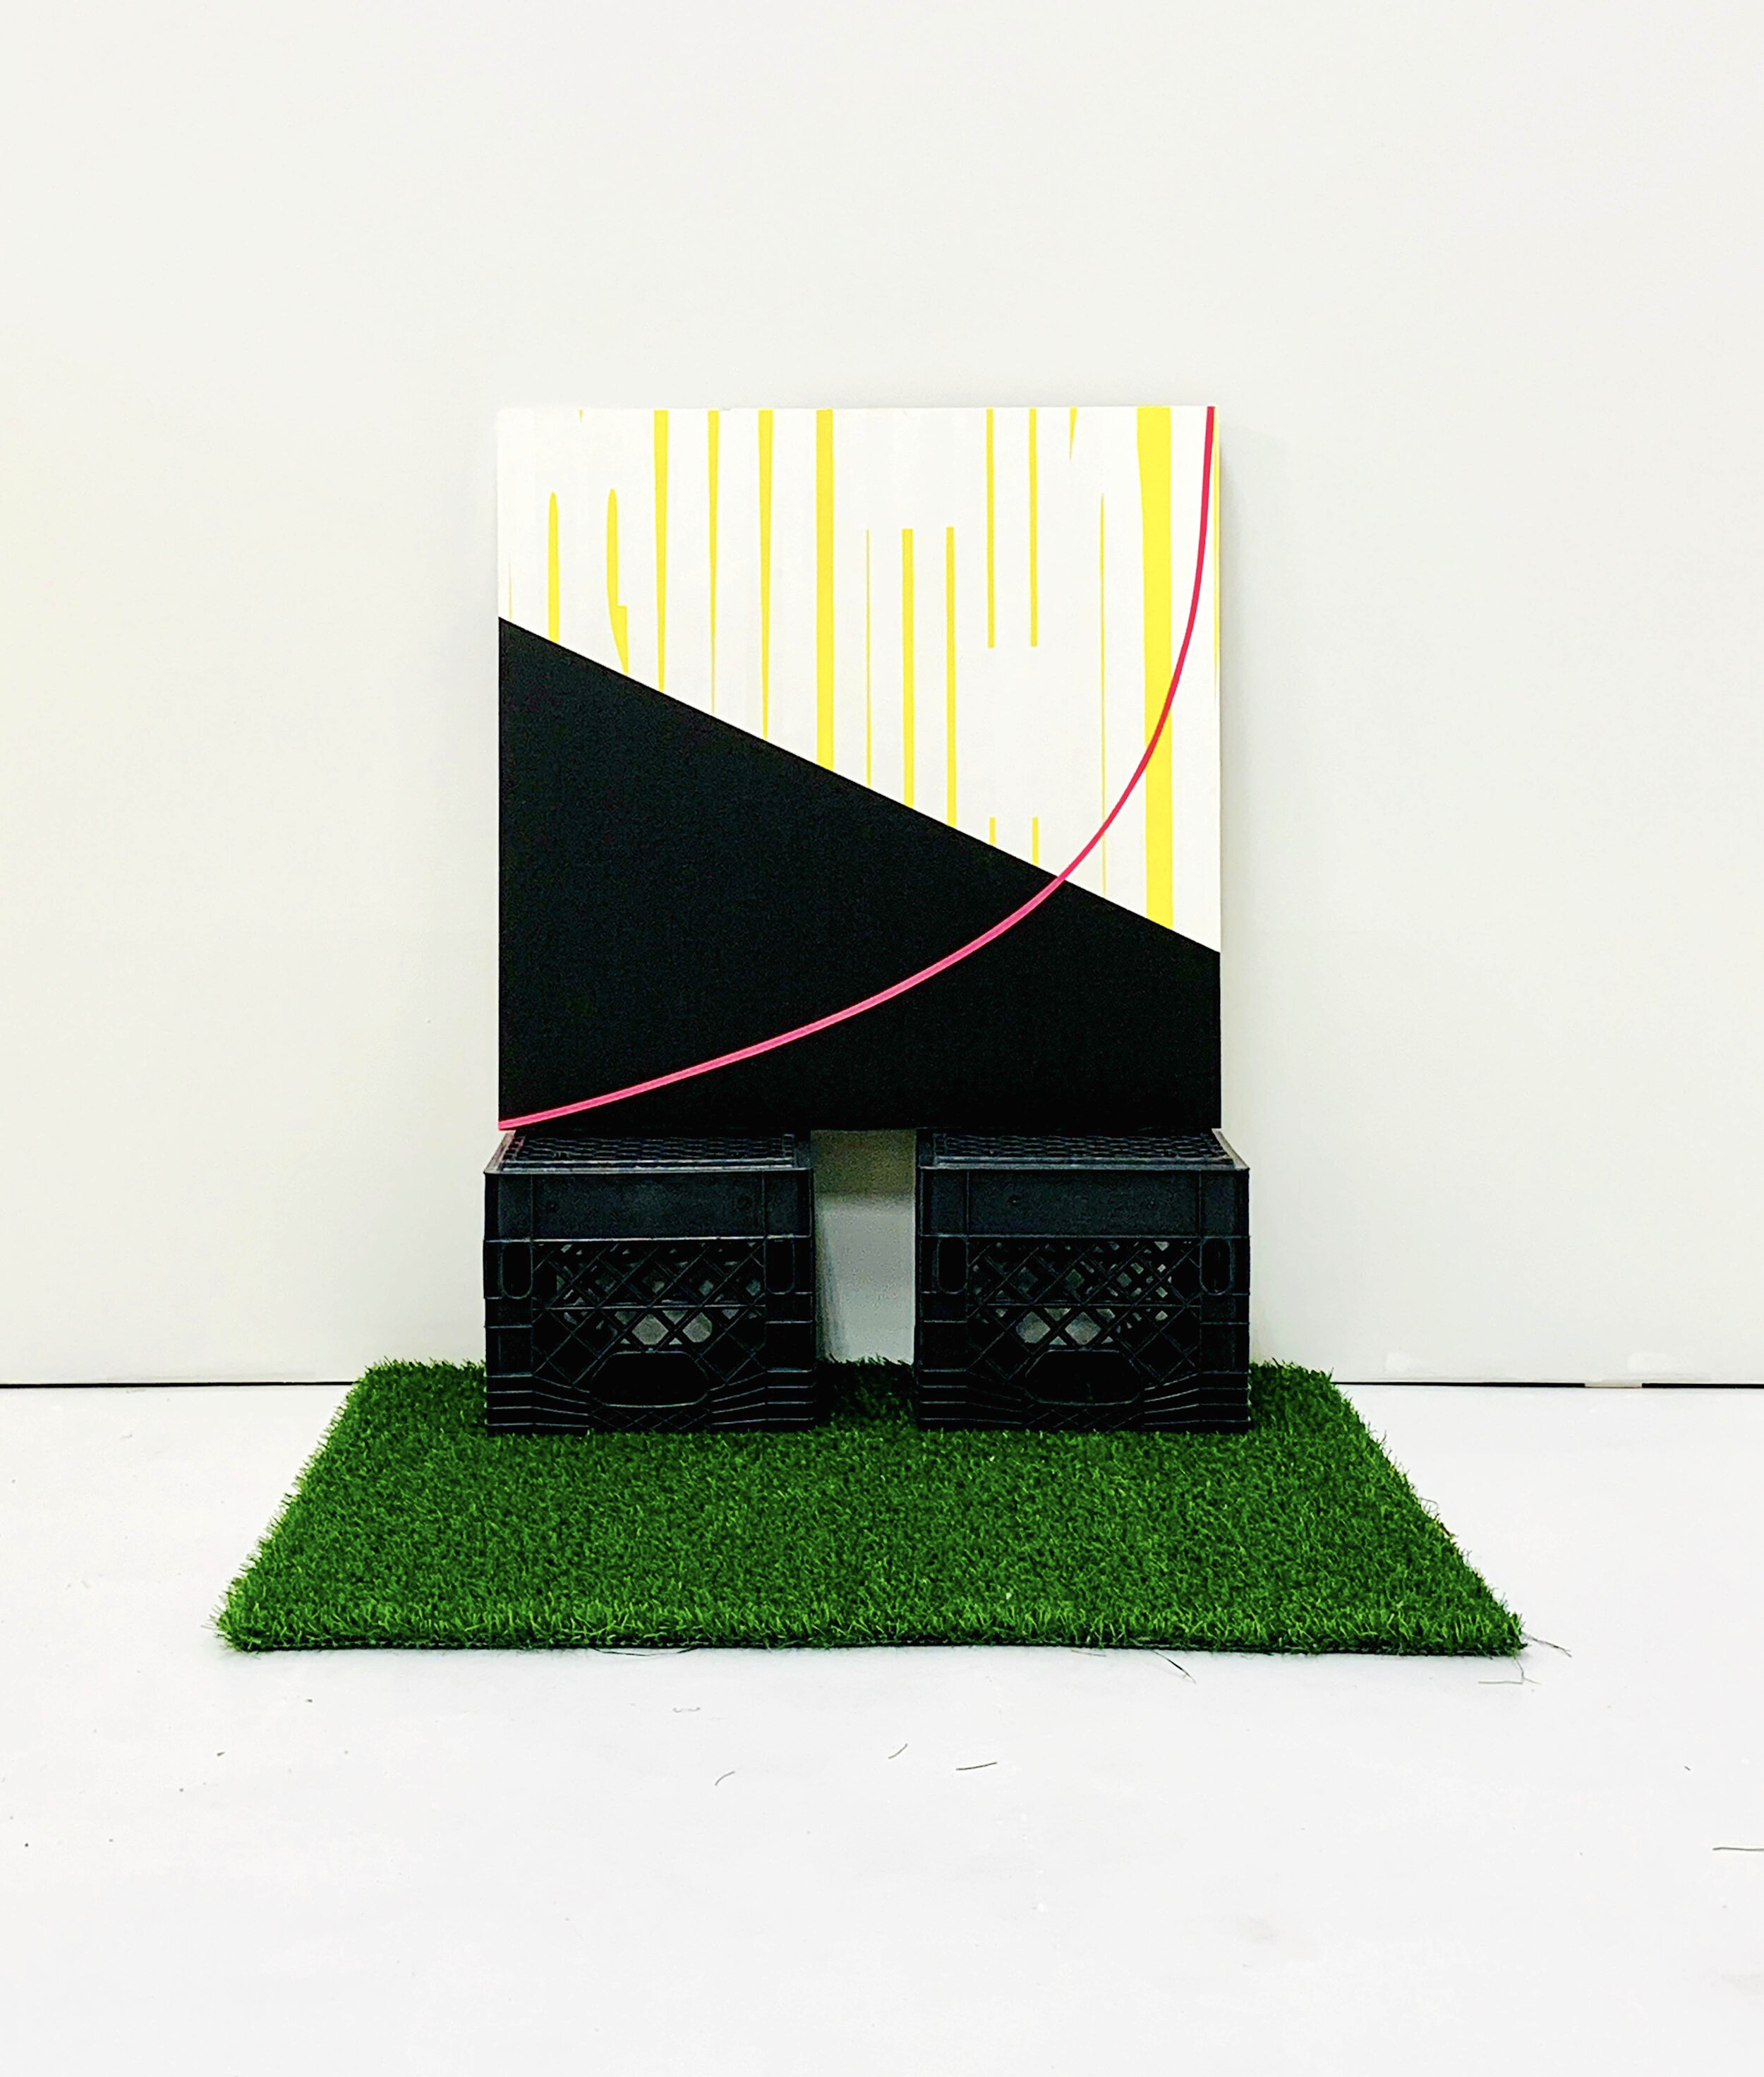 3_Bauer_(right)This Way_2019_acrylic, panel, milk crates, artificial greaa, 40x40x40%22.jpg